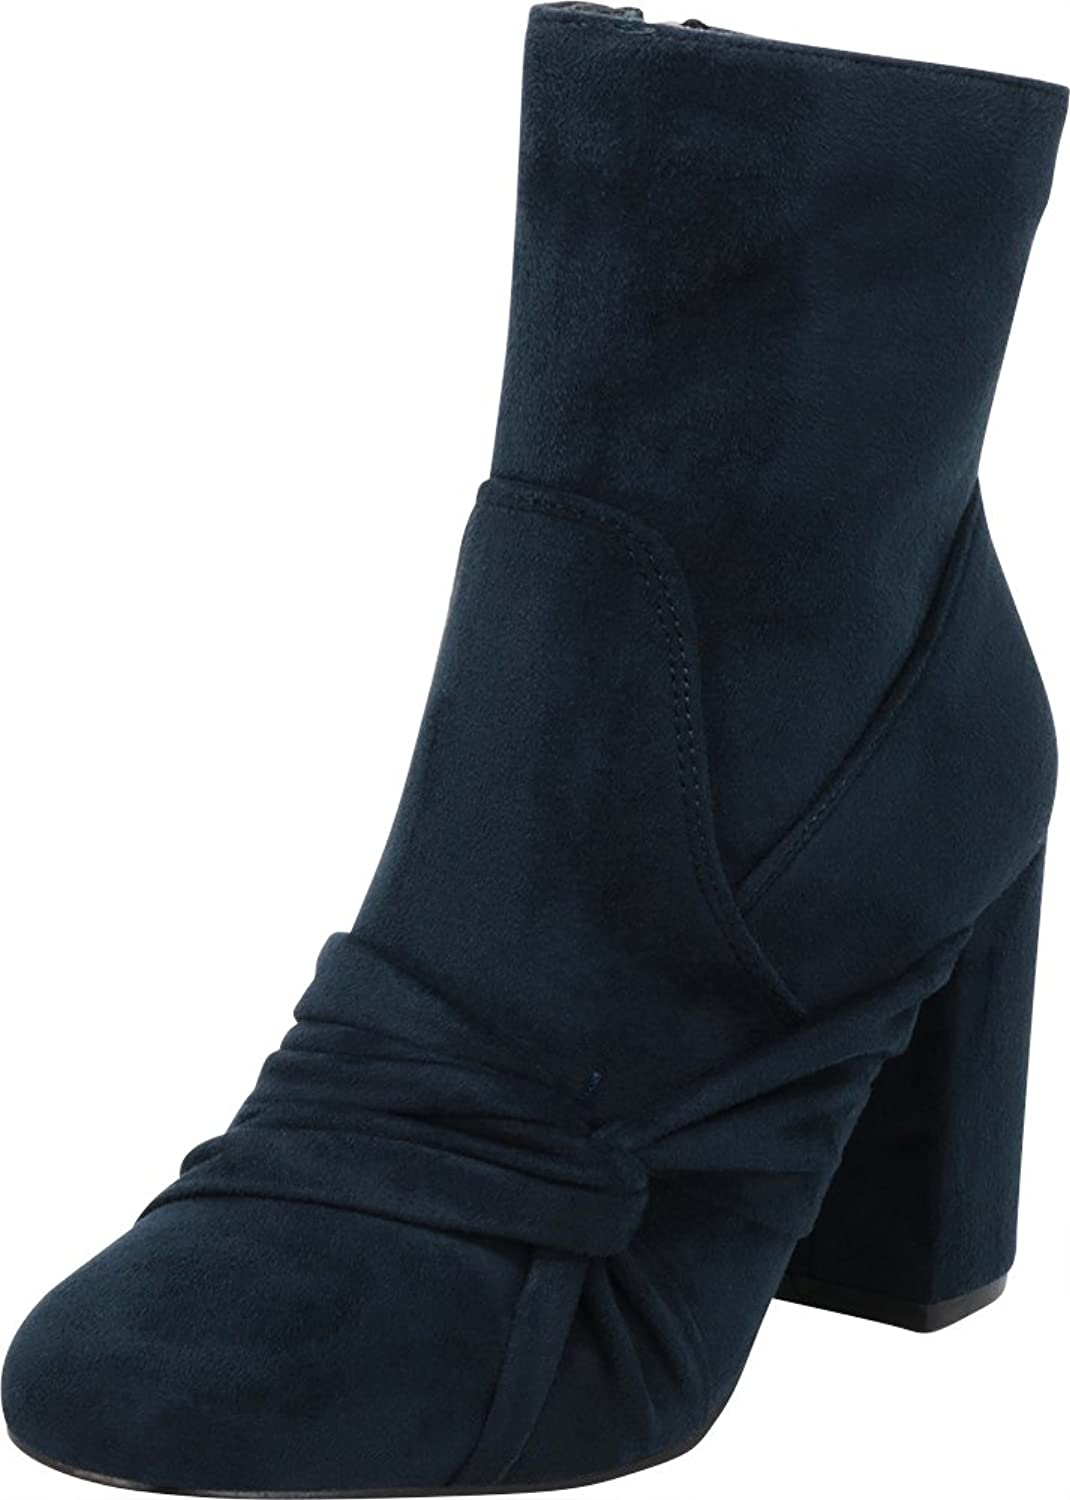 Cambridge Select Women's Closed Round Toe Twist Knot Bow Chunky Block High Heel Ankle Bootie